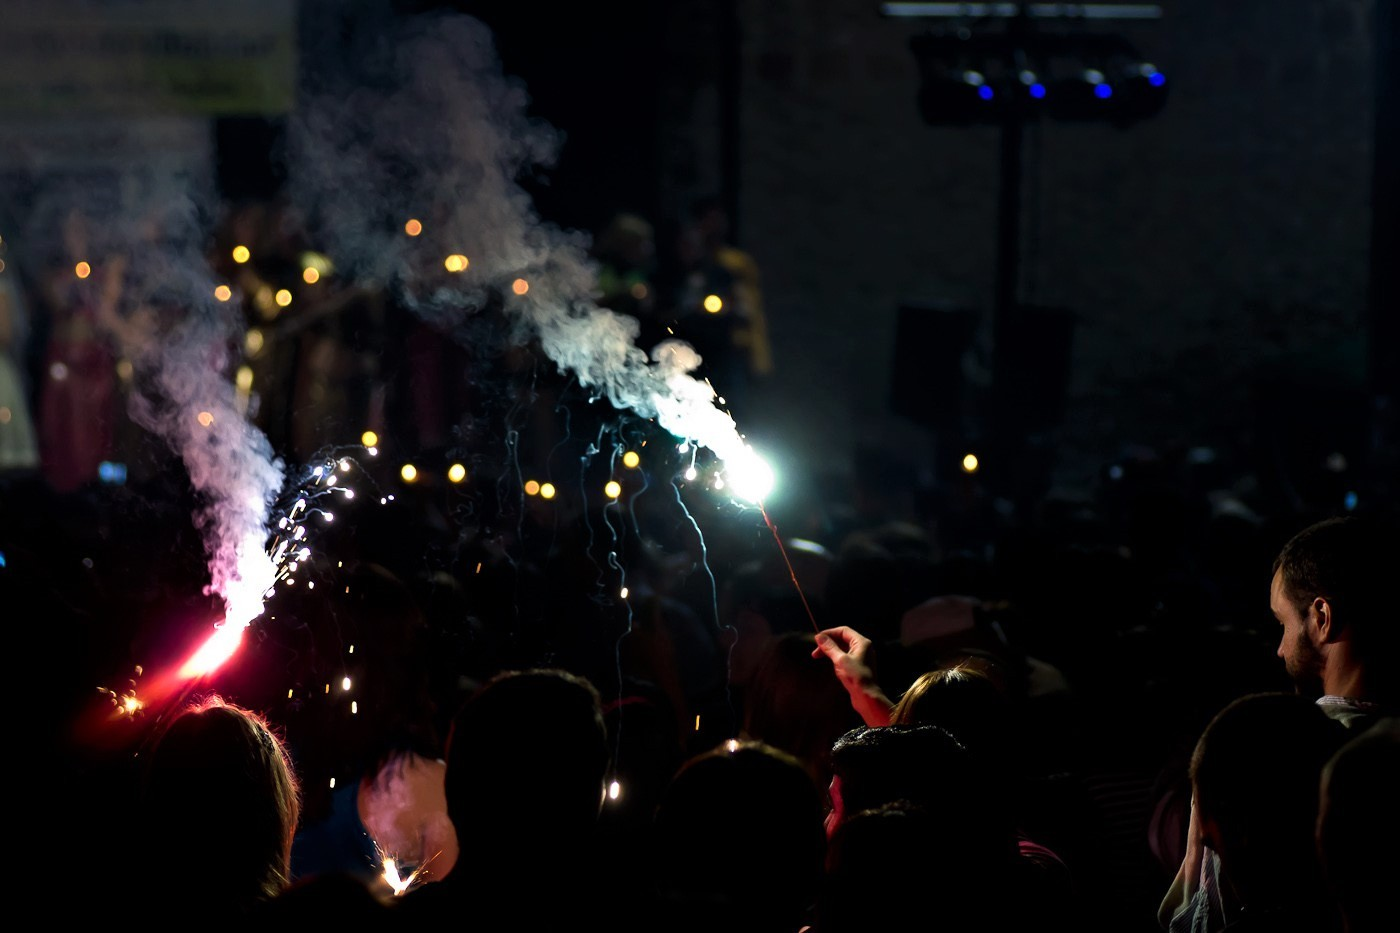 Diwali joins Nuit Blanche on the list of cultural events Brampton won't host in 2019, but hopes to host next year